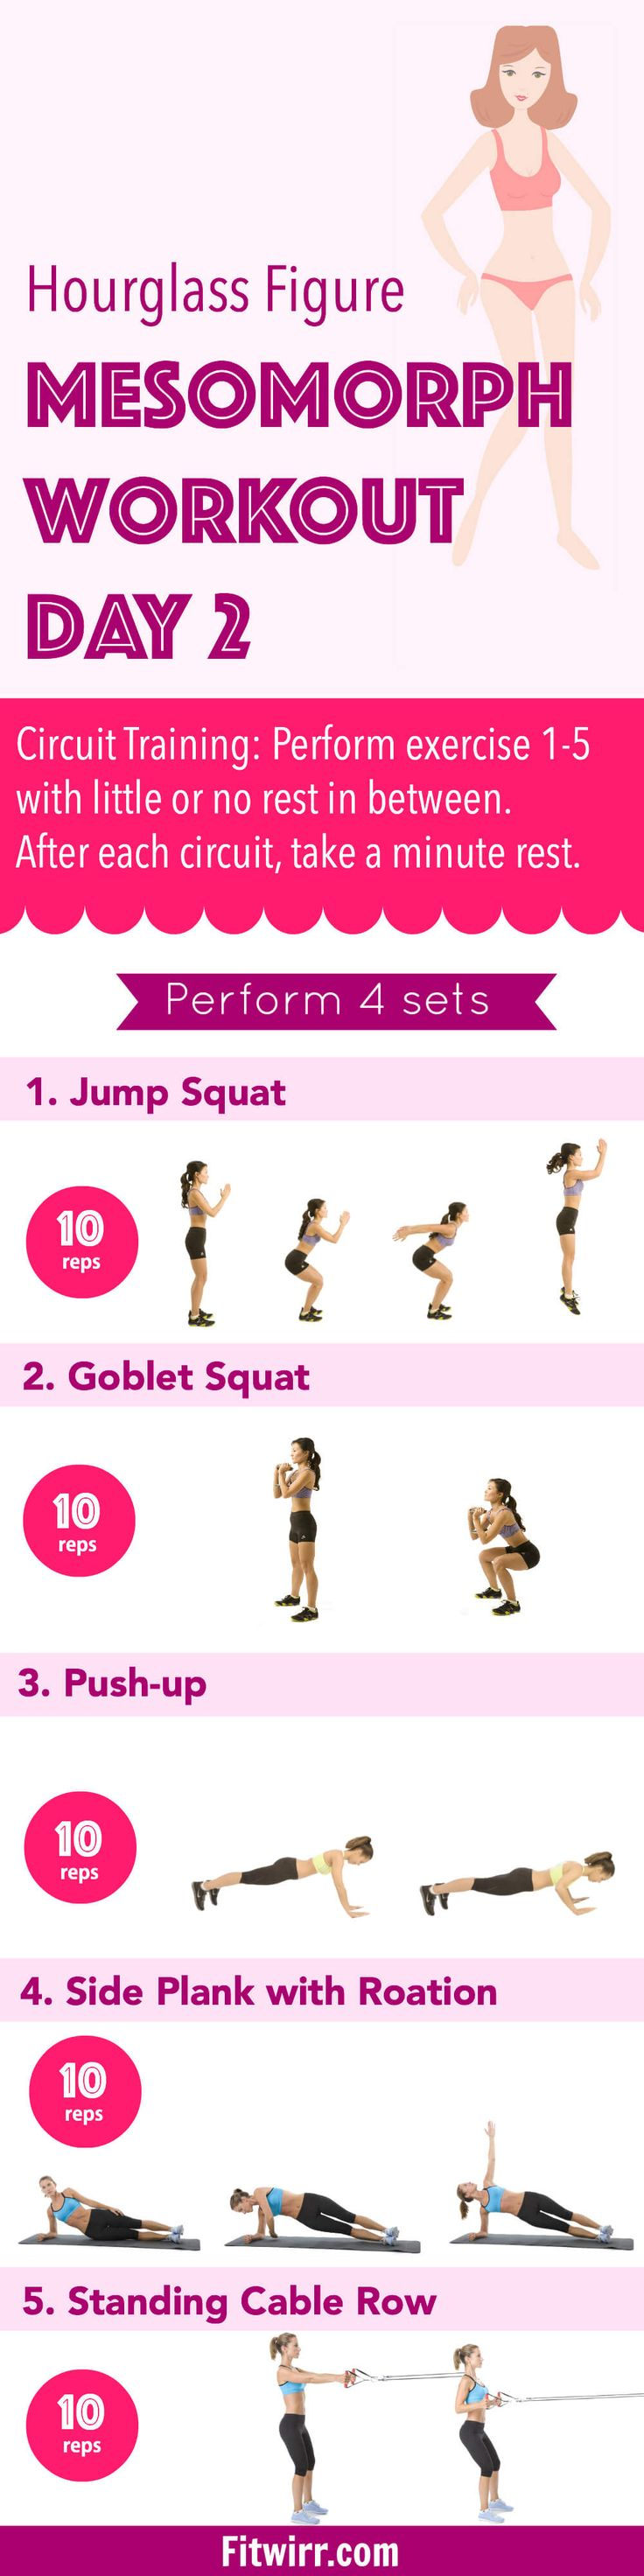 The recommended body type Hourglass Figure workout routine. Athletic and strong Mesomorph body shape should try resistance circuit training with a frequency of 3 days a week.